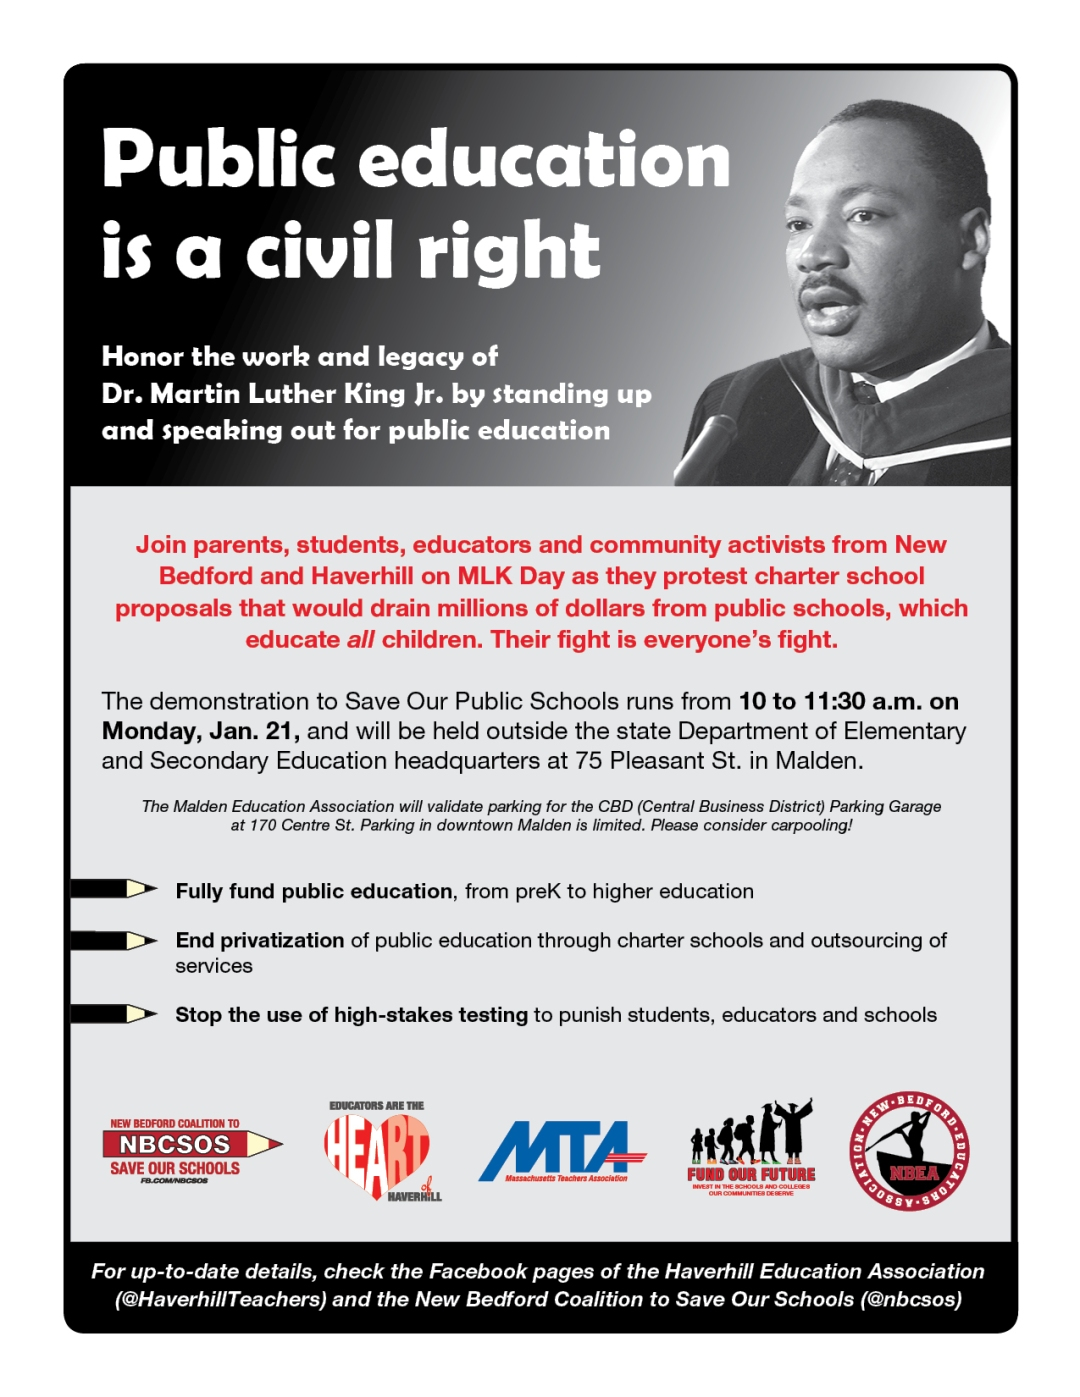 mlk_dayofaction_flyer_2019_v2